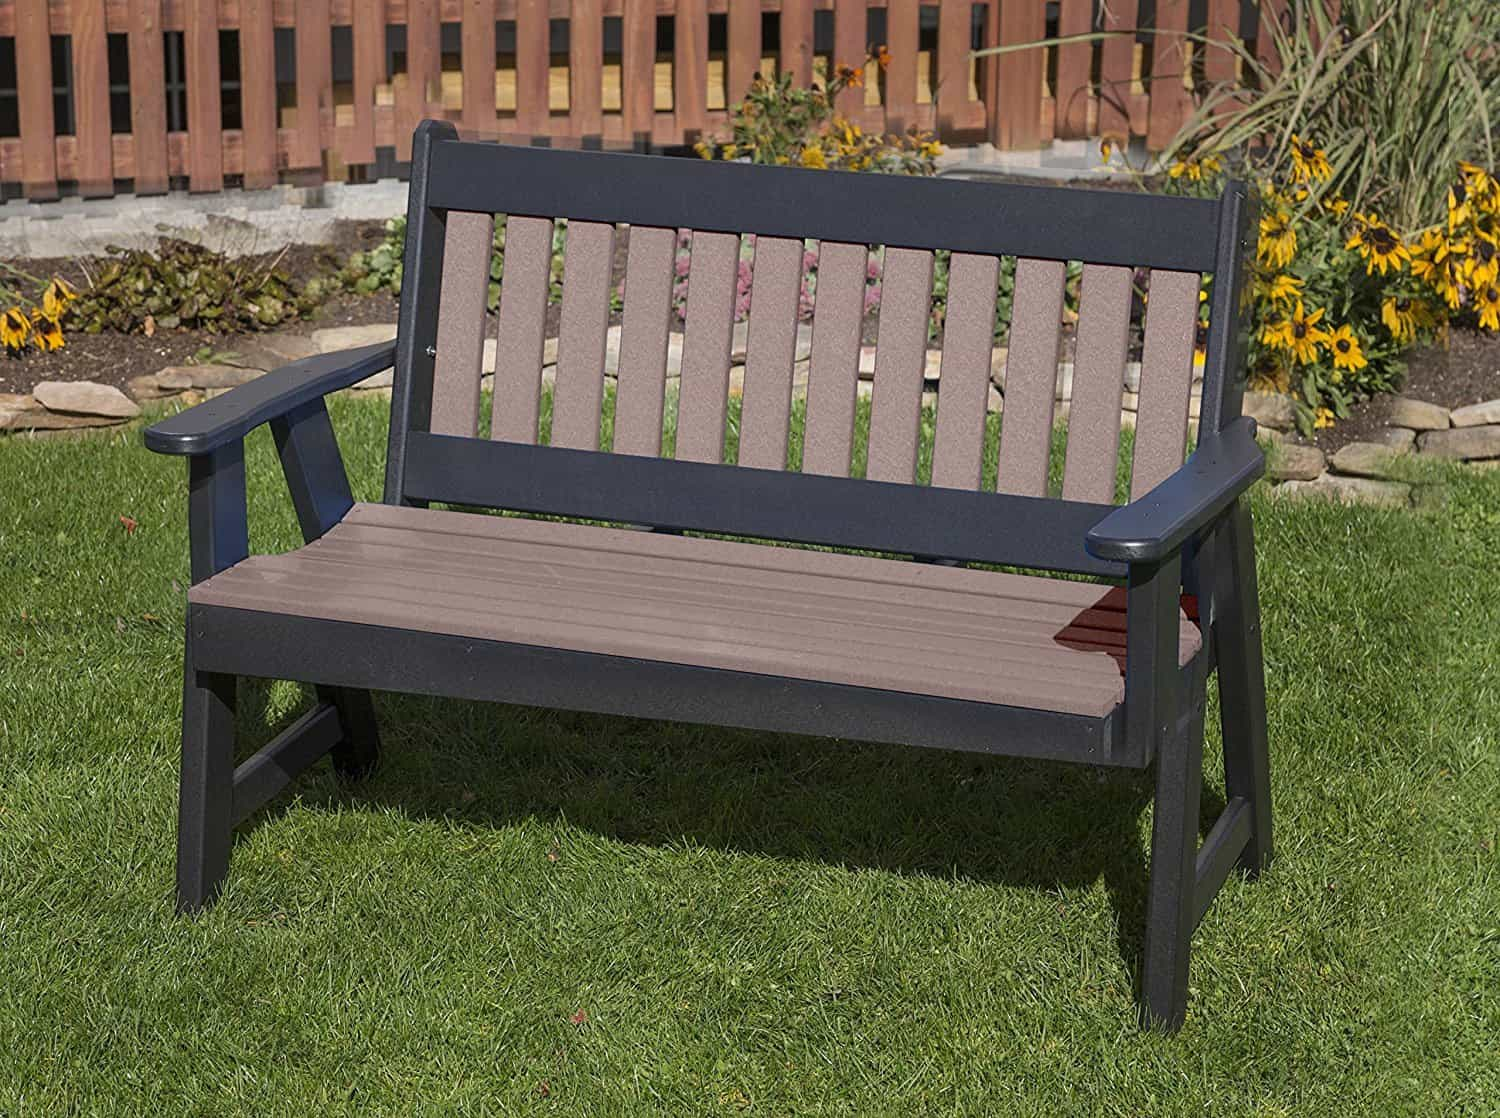 POLY LUMBER Mission Porch EVERLASTING PolyTuf HDPE AMISH CRAFTED BENCH